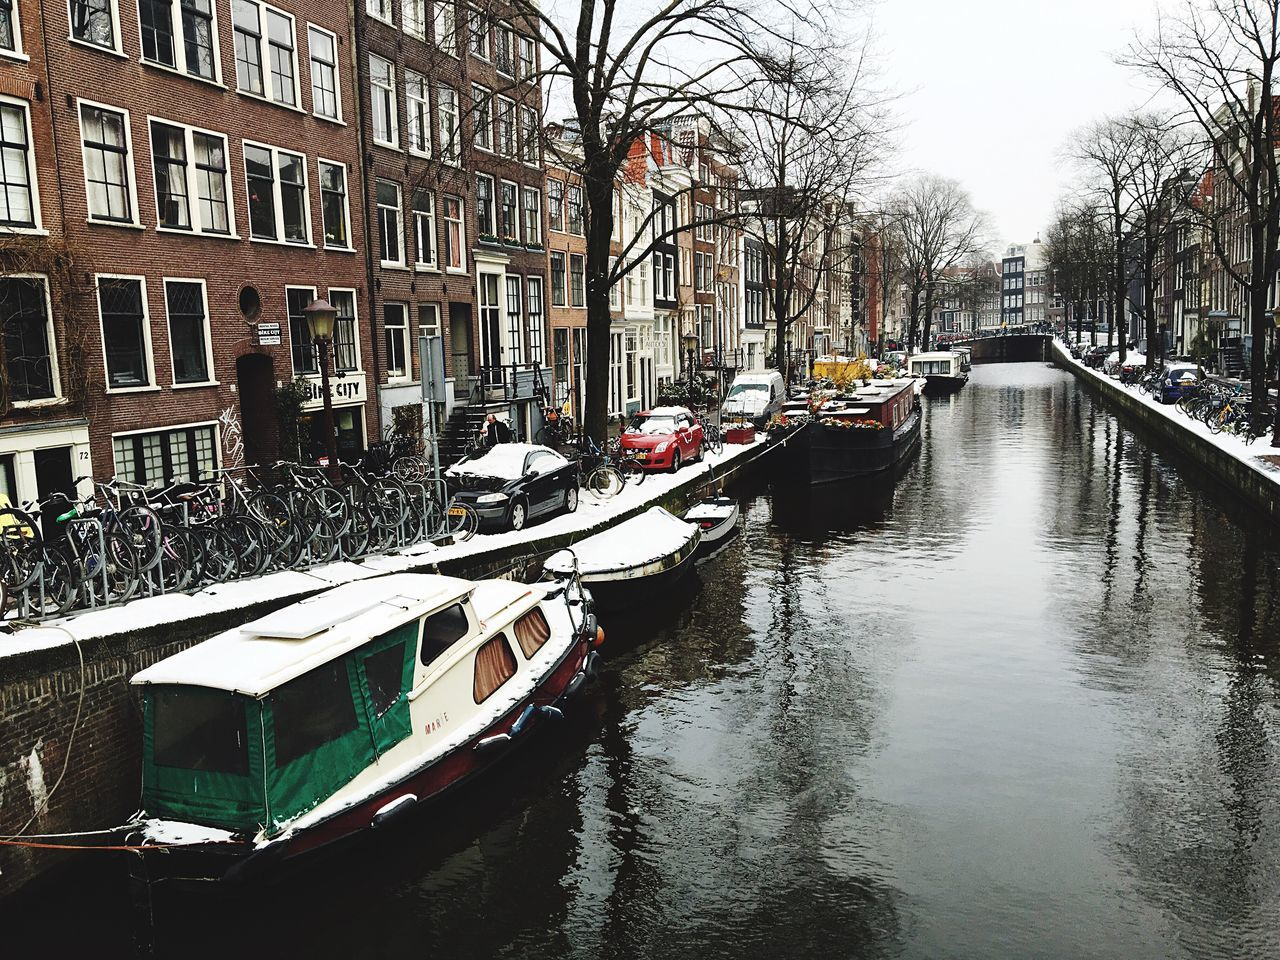 Canal Mode Of Transport Nautical Vessel Architecture Building Exterior Reflection City Transportation Built Structure Water Outdoors Bare Tree Tree Waterfront No People Cultures Day Nature Winter